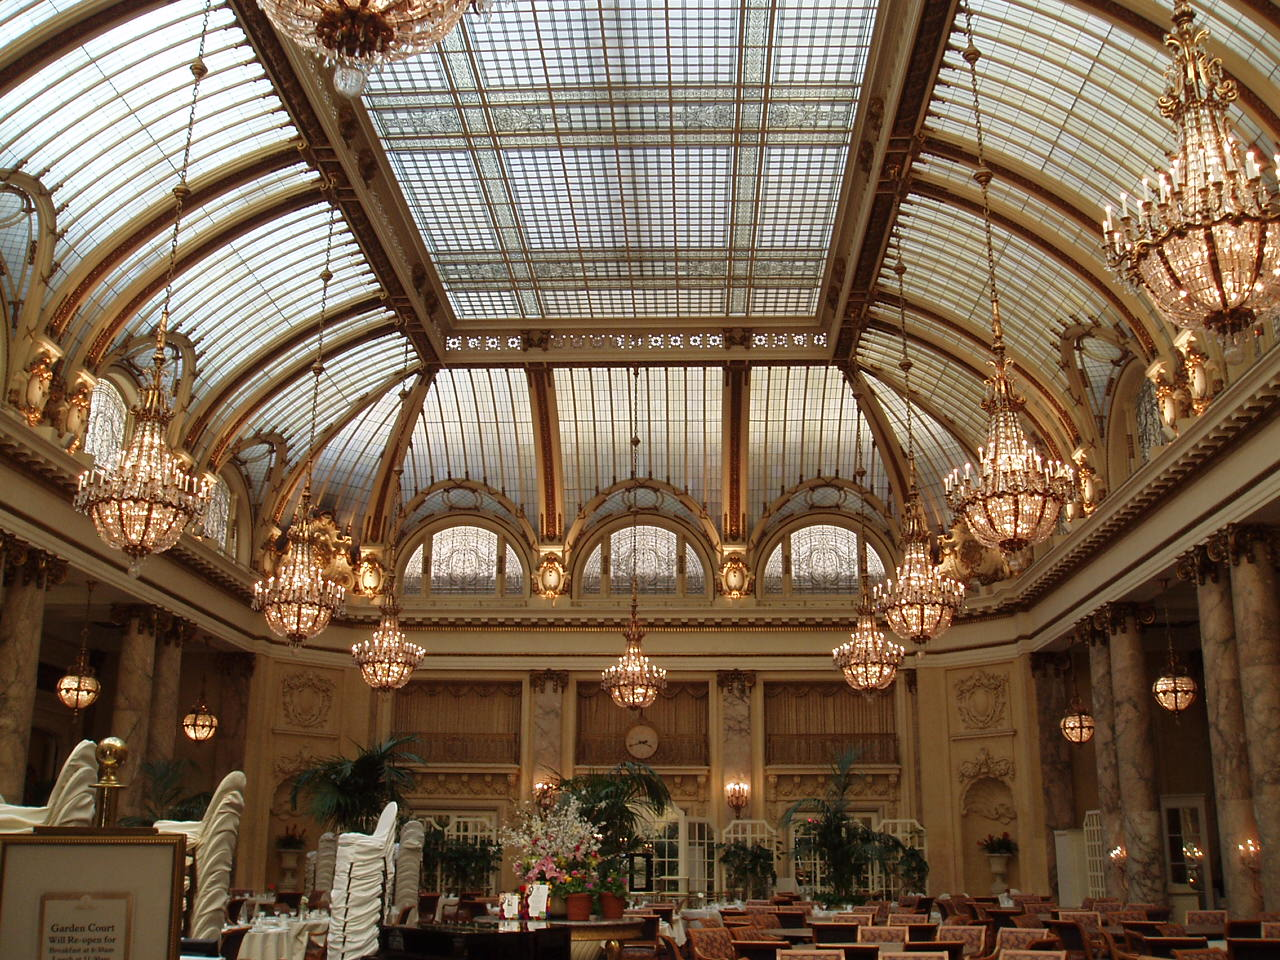 file:palace dining room - wikimedia commons